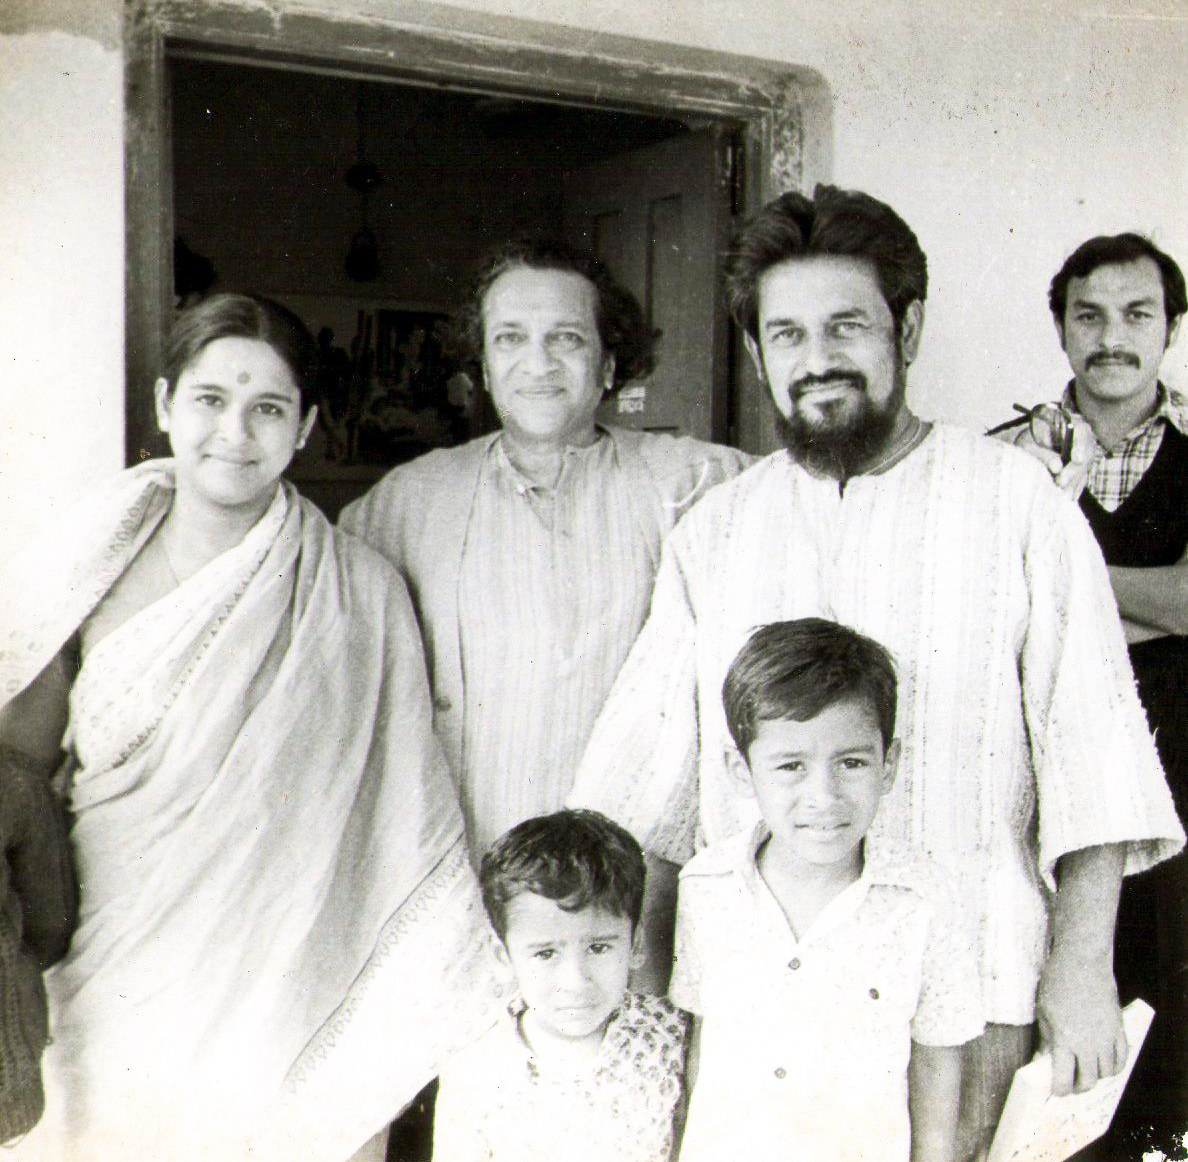 From left to right: Ajanta Roy Chowdhury, Pandit Ravi Shankar, Sarbari Roy Chowdhury and the kids, Saurav and Sougata © Courtesy Roy Chowdhury, private collection / Uncredited